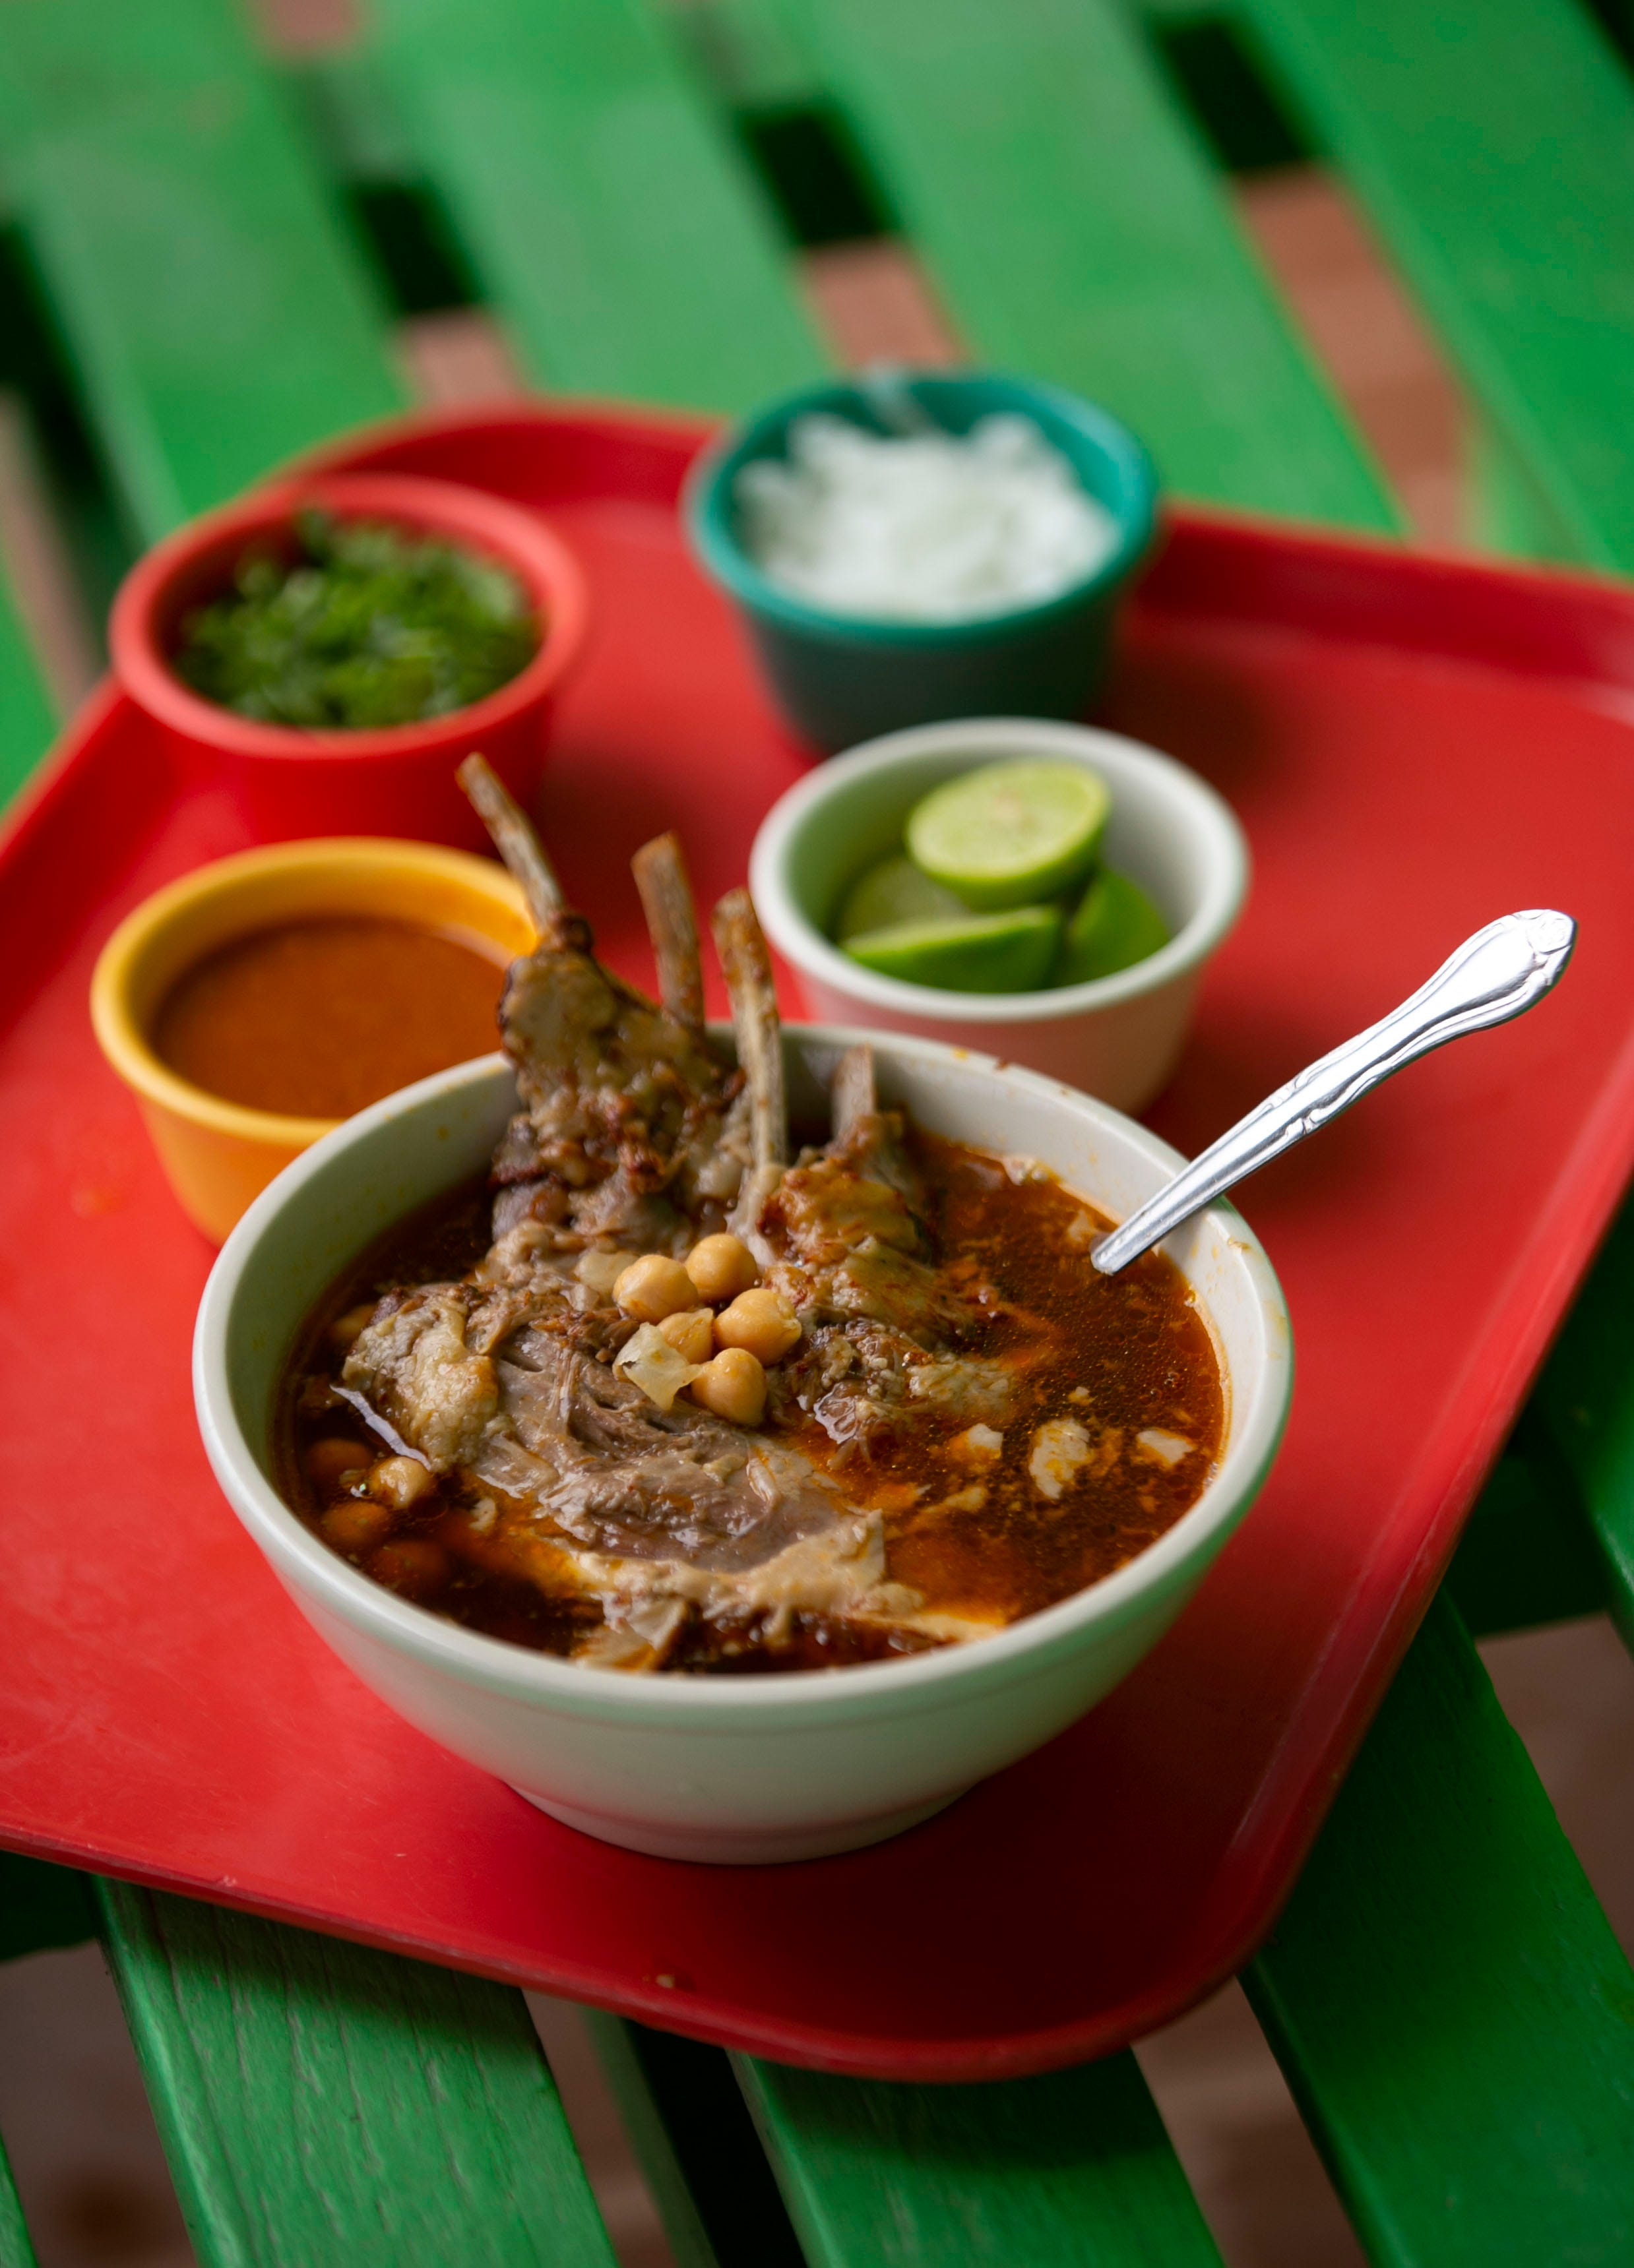 Birria ribs in broth at Hola Cabrito restaurant in Phoenix on July 14, 2021. The restaurant specializes in birria de chivo, goat meat with a secret marinade that's stewed for hours.